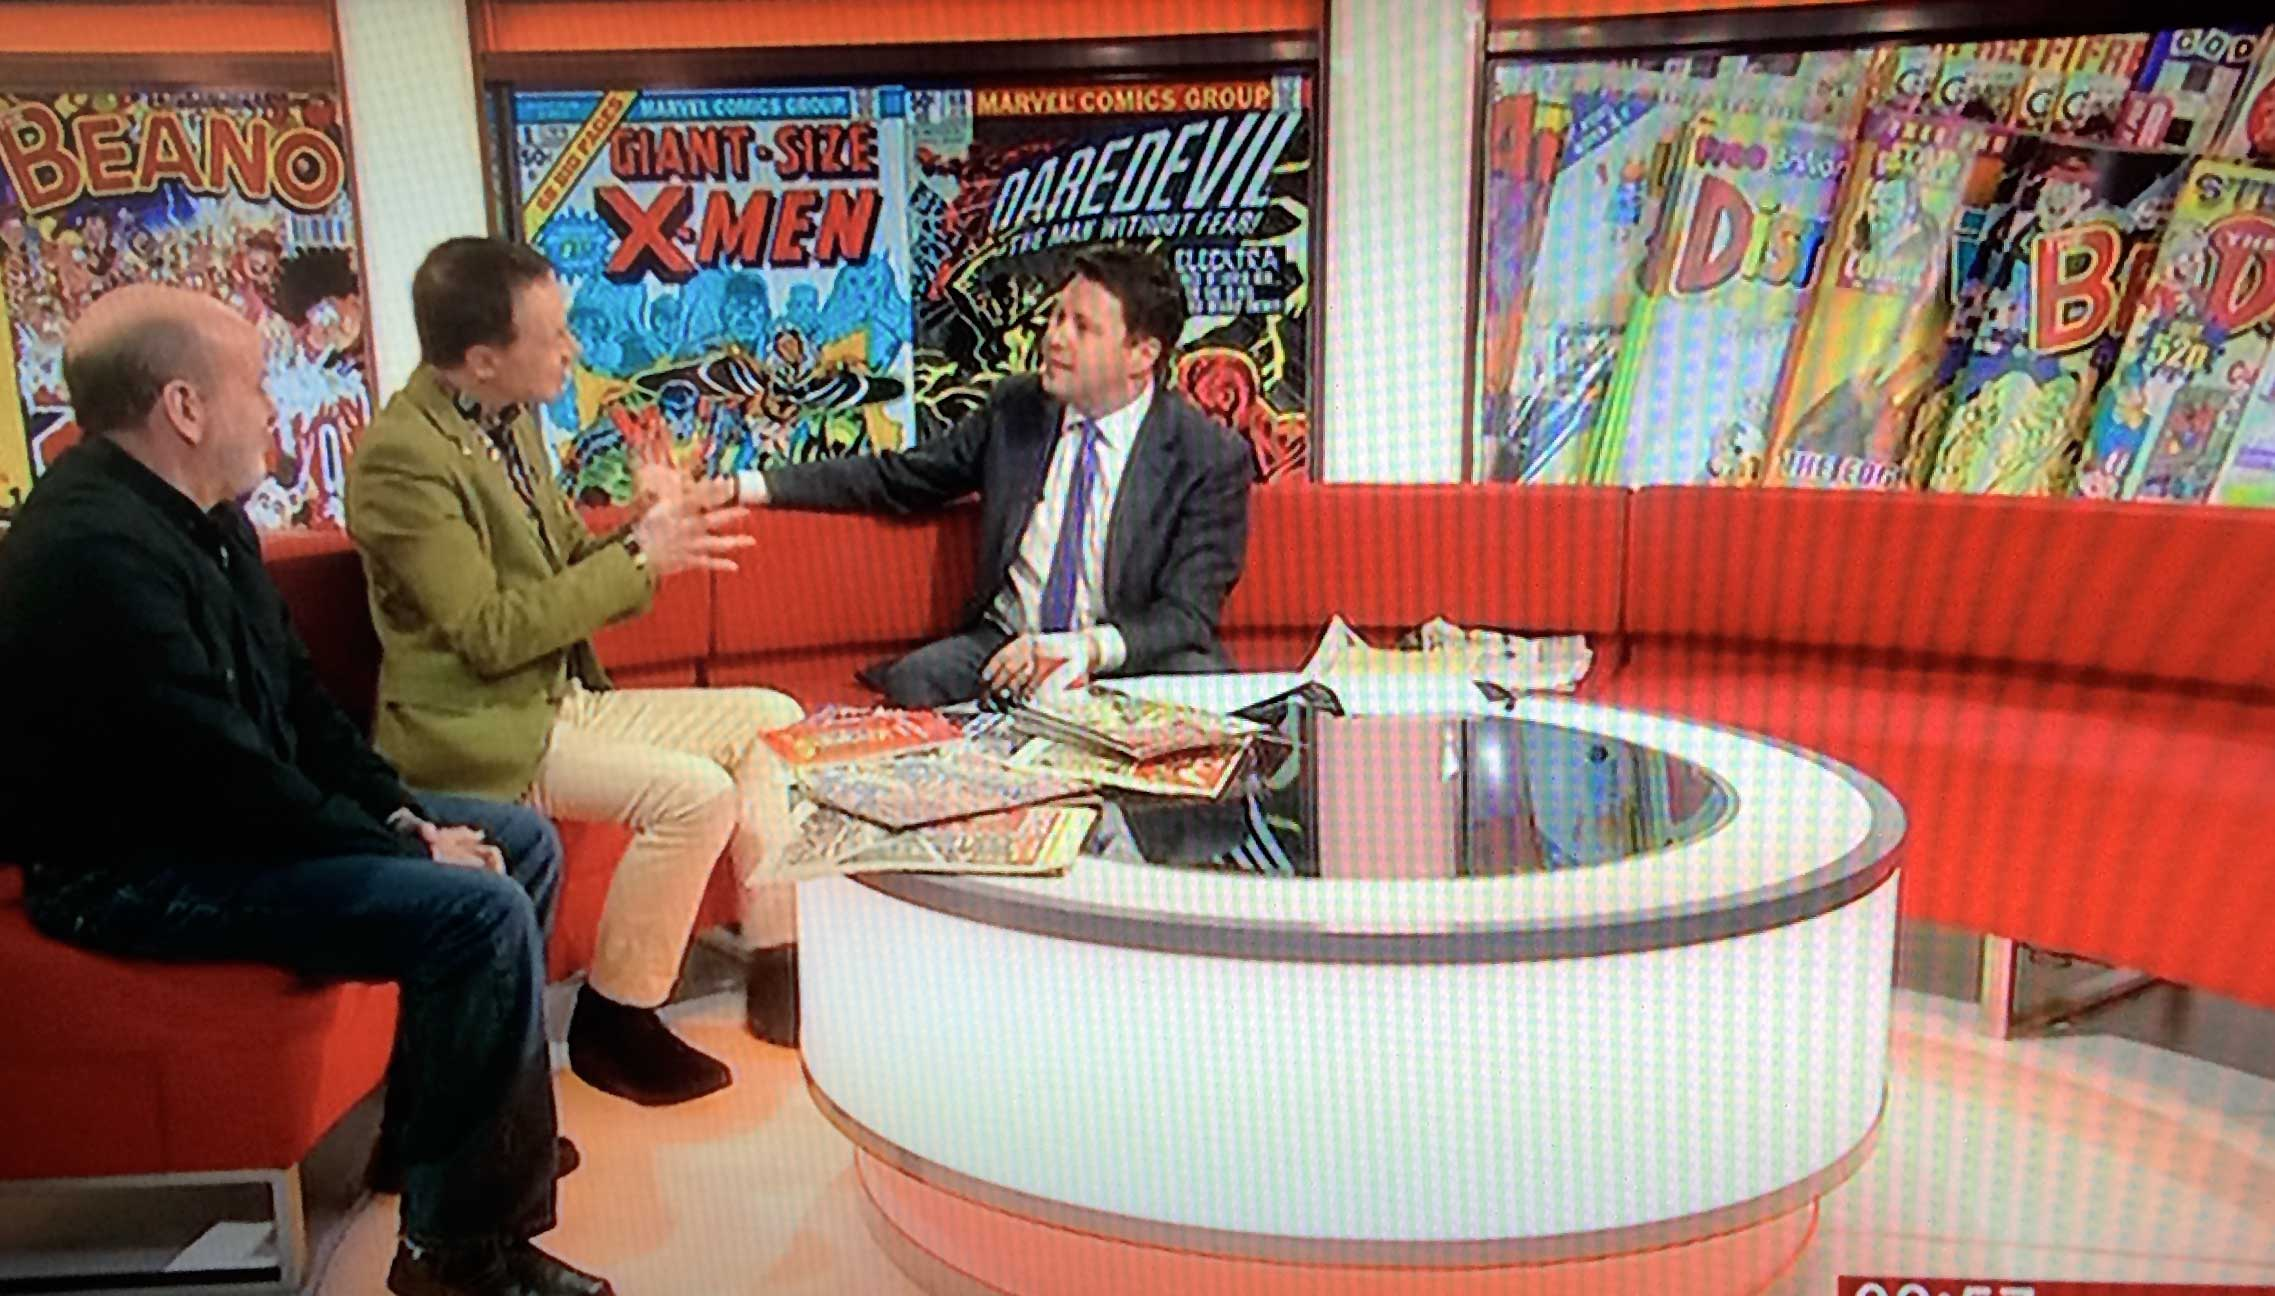 Paul Gravett on BBC News with David Huxley, talking about the British Library's Comics Unmasked exhibition